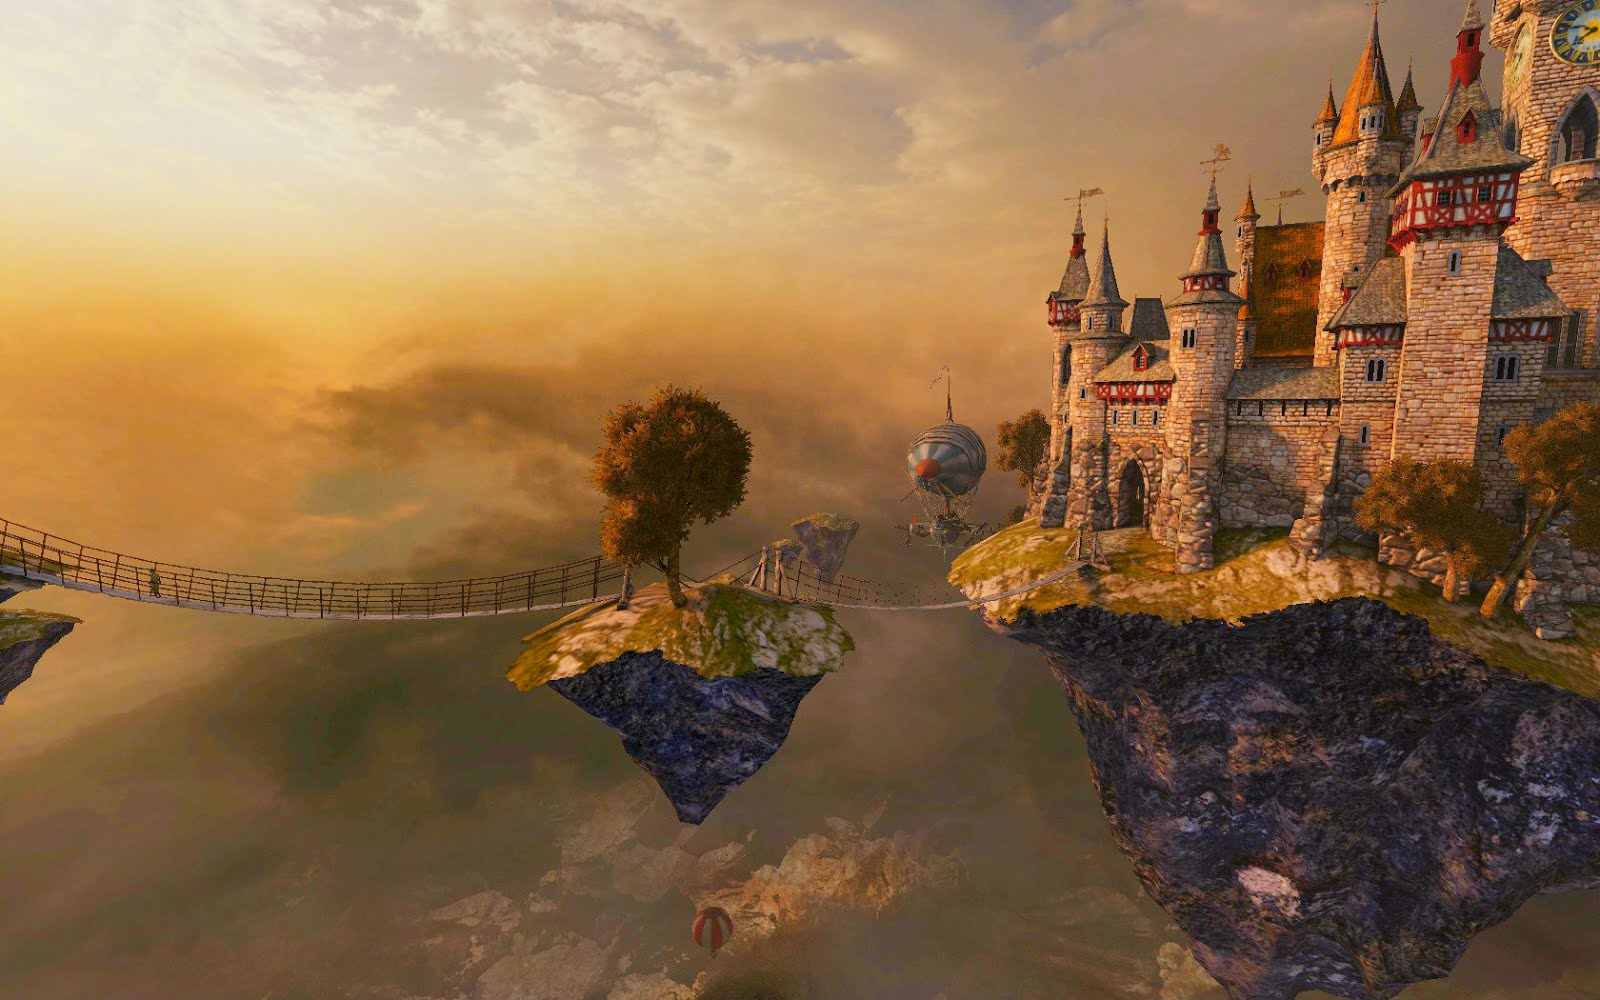 Sky Citadel Screenshot 27 - Copy.jpg